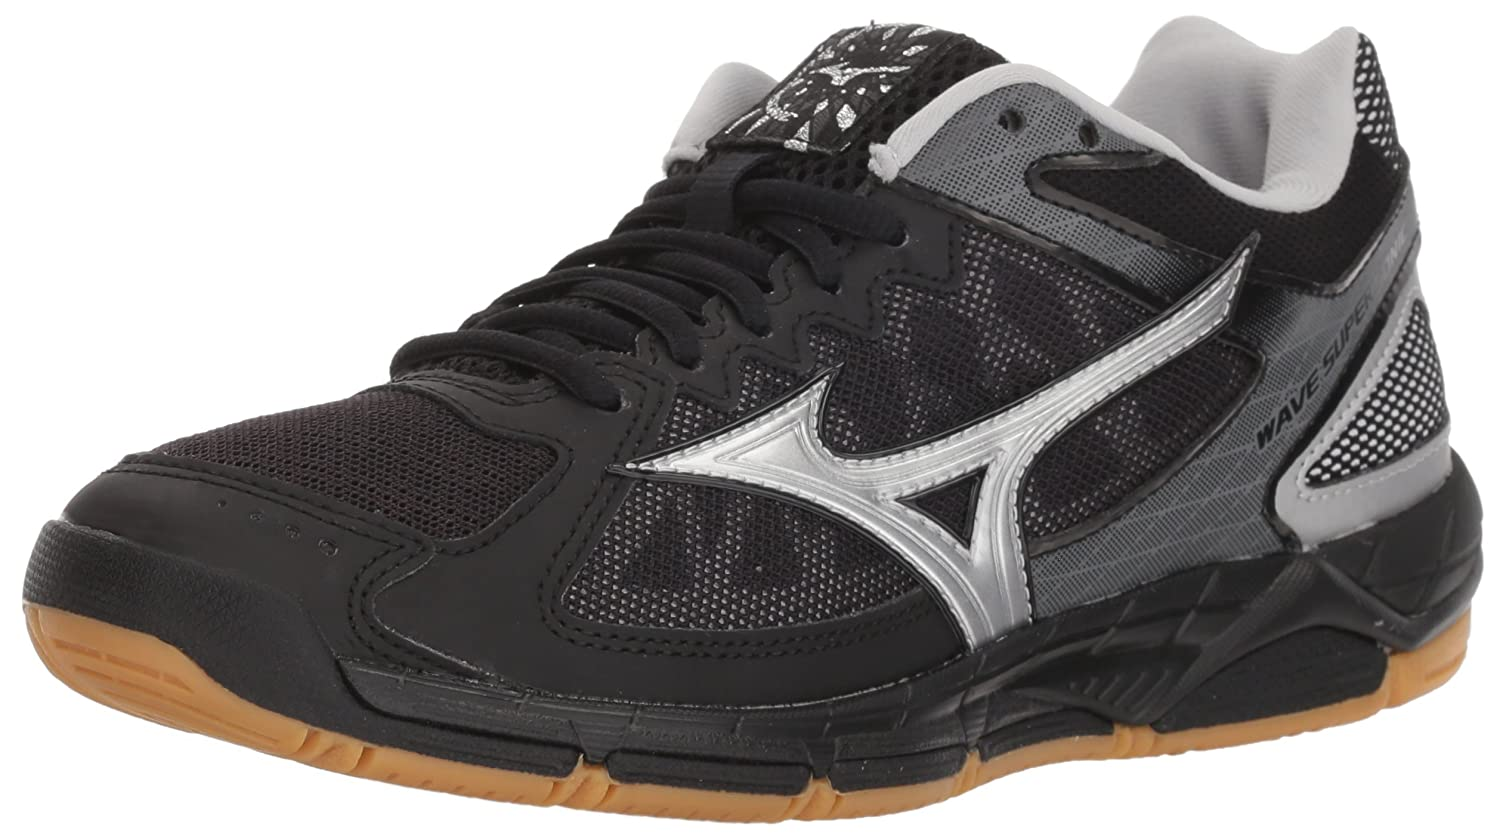 Mizuno Women's Wave Supersonic Volleyball Shoe B07825MLZB Women's 9.5 B US|Black/Silver